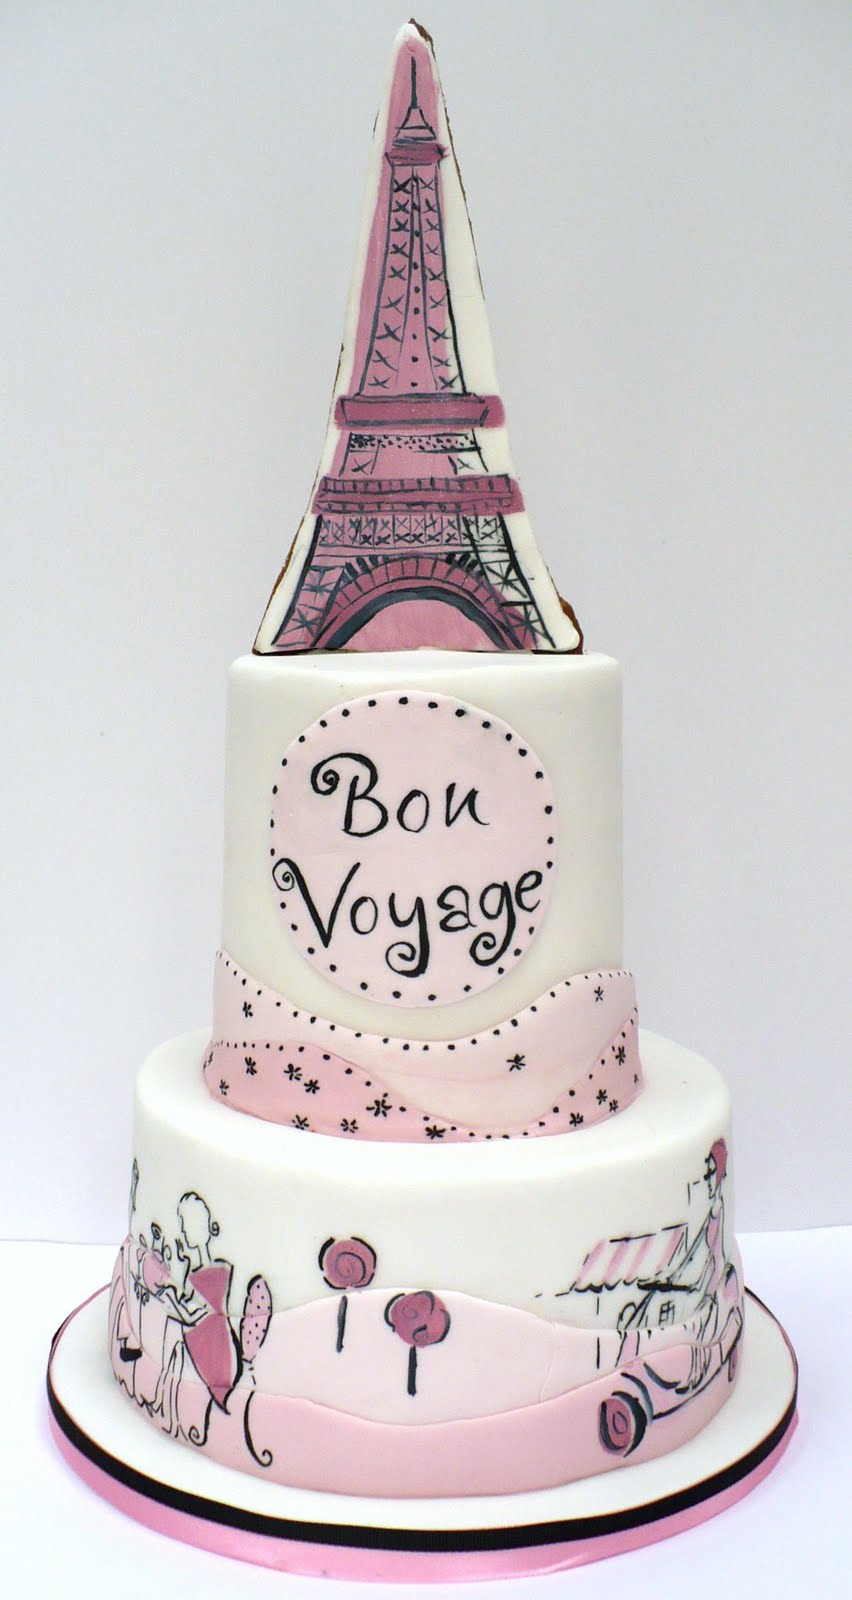 Night in Paris Theme Birthday http://alyssafalkner.blogspot.com/2011/04/its-girl-cake.html